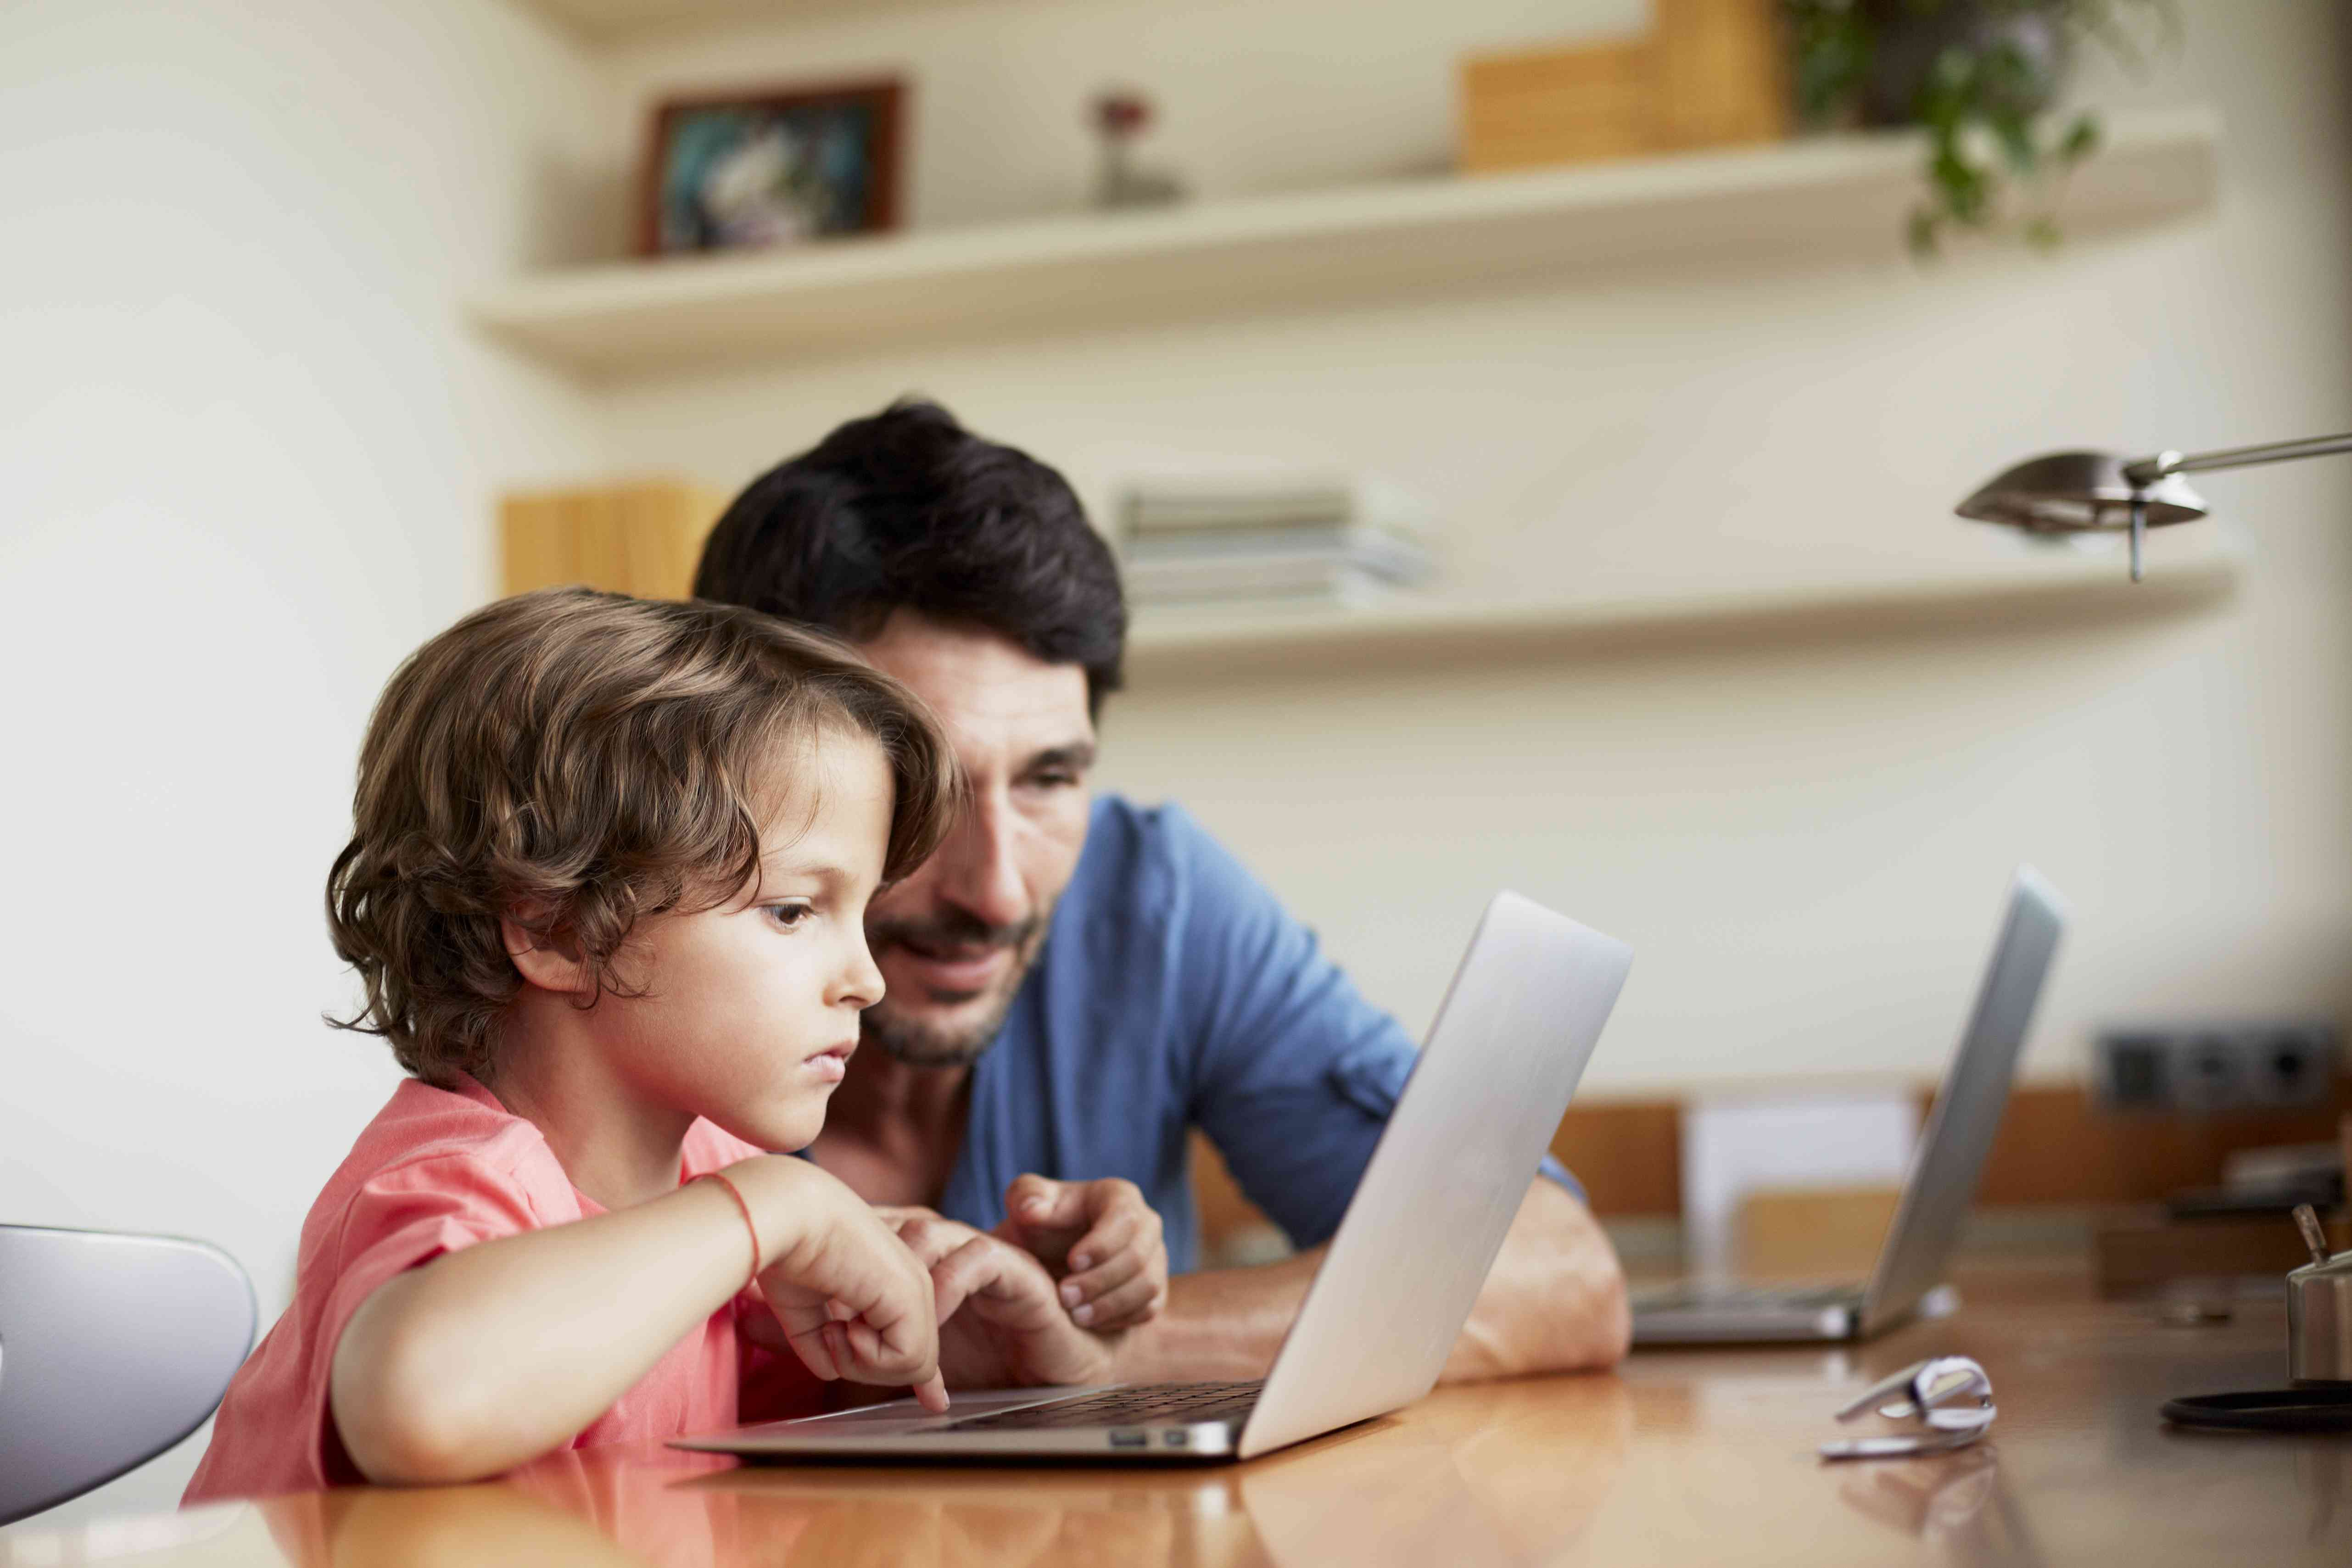 Man assisting son in using laptop